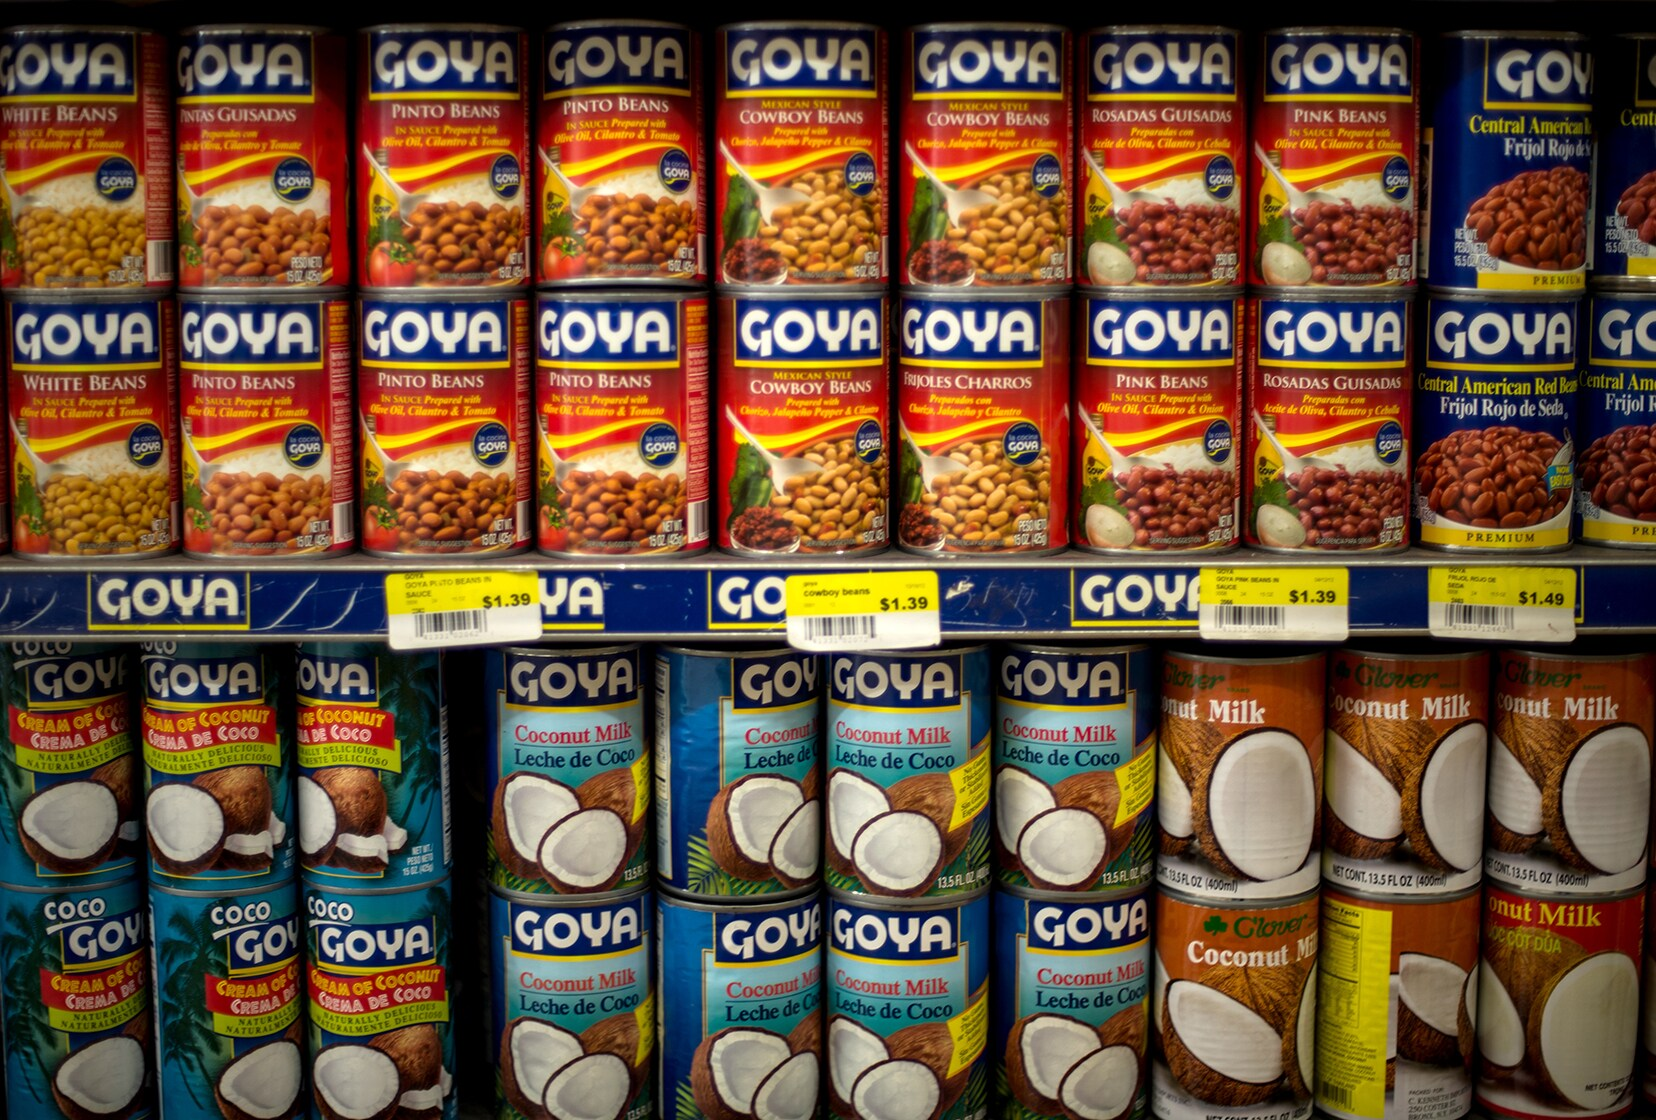 A Goya Boycott Has People Sharing Alternatives For Adobo Sazon And More Pantry Staples The Washington Post